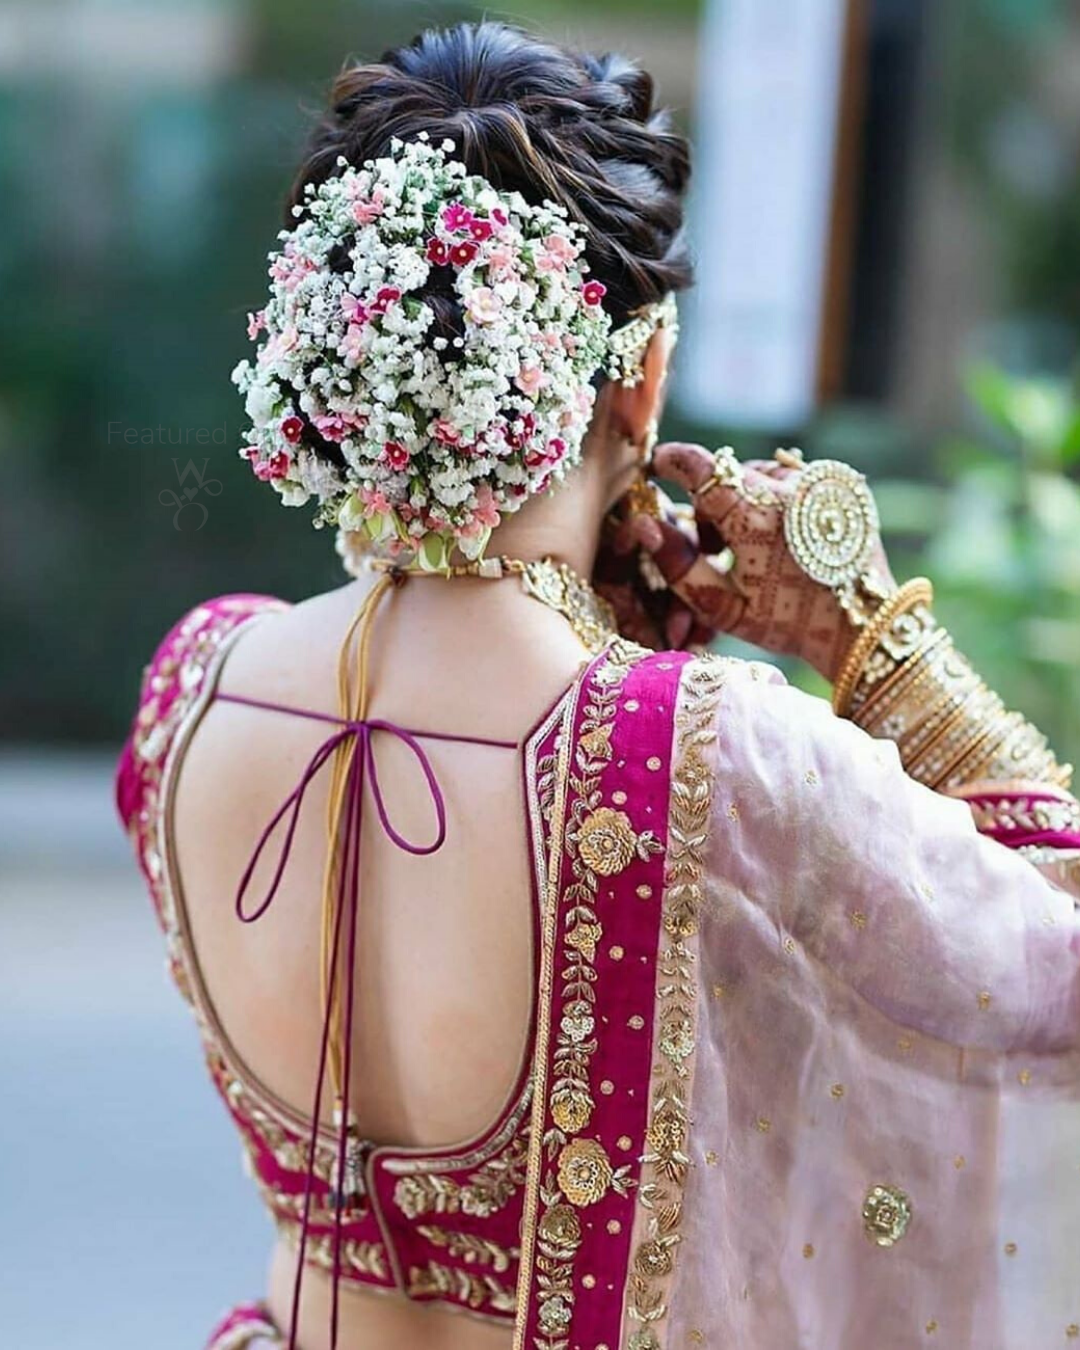 Bun Hairstyle Ideas Bridal Hairstyle Ideas Unique Hairstyle Wedding Hairstyle In Bridal Hairstyle Indian Wedding Bridal Hair Buns Indian Bride Hairstyle